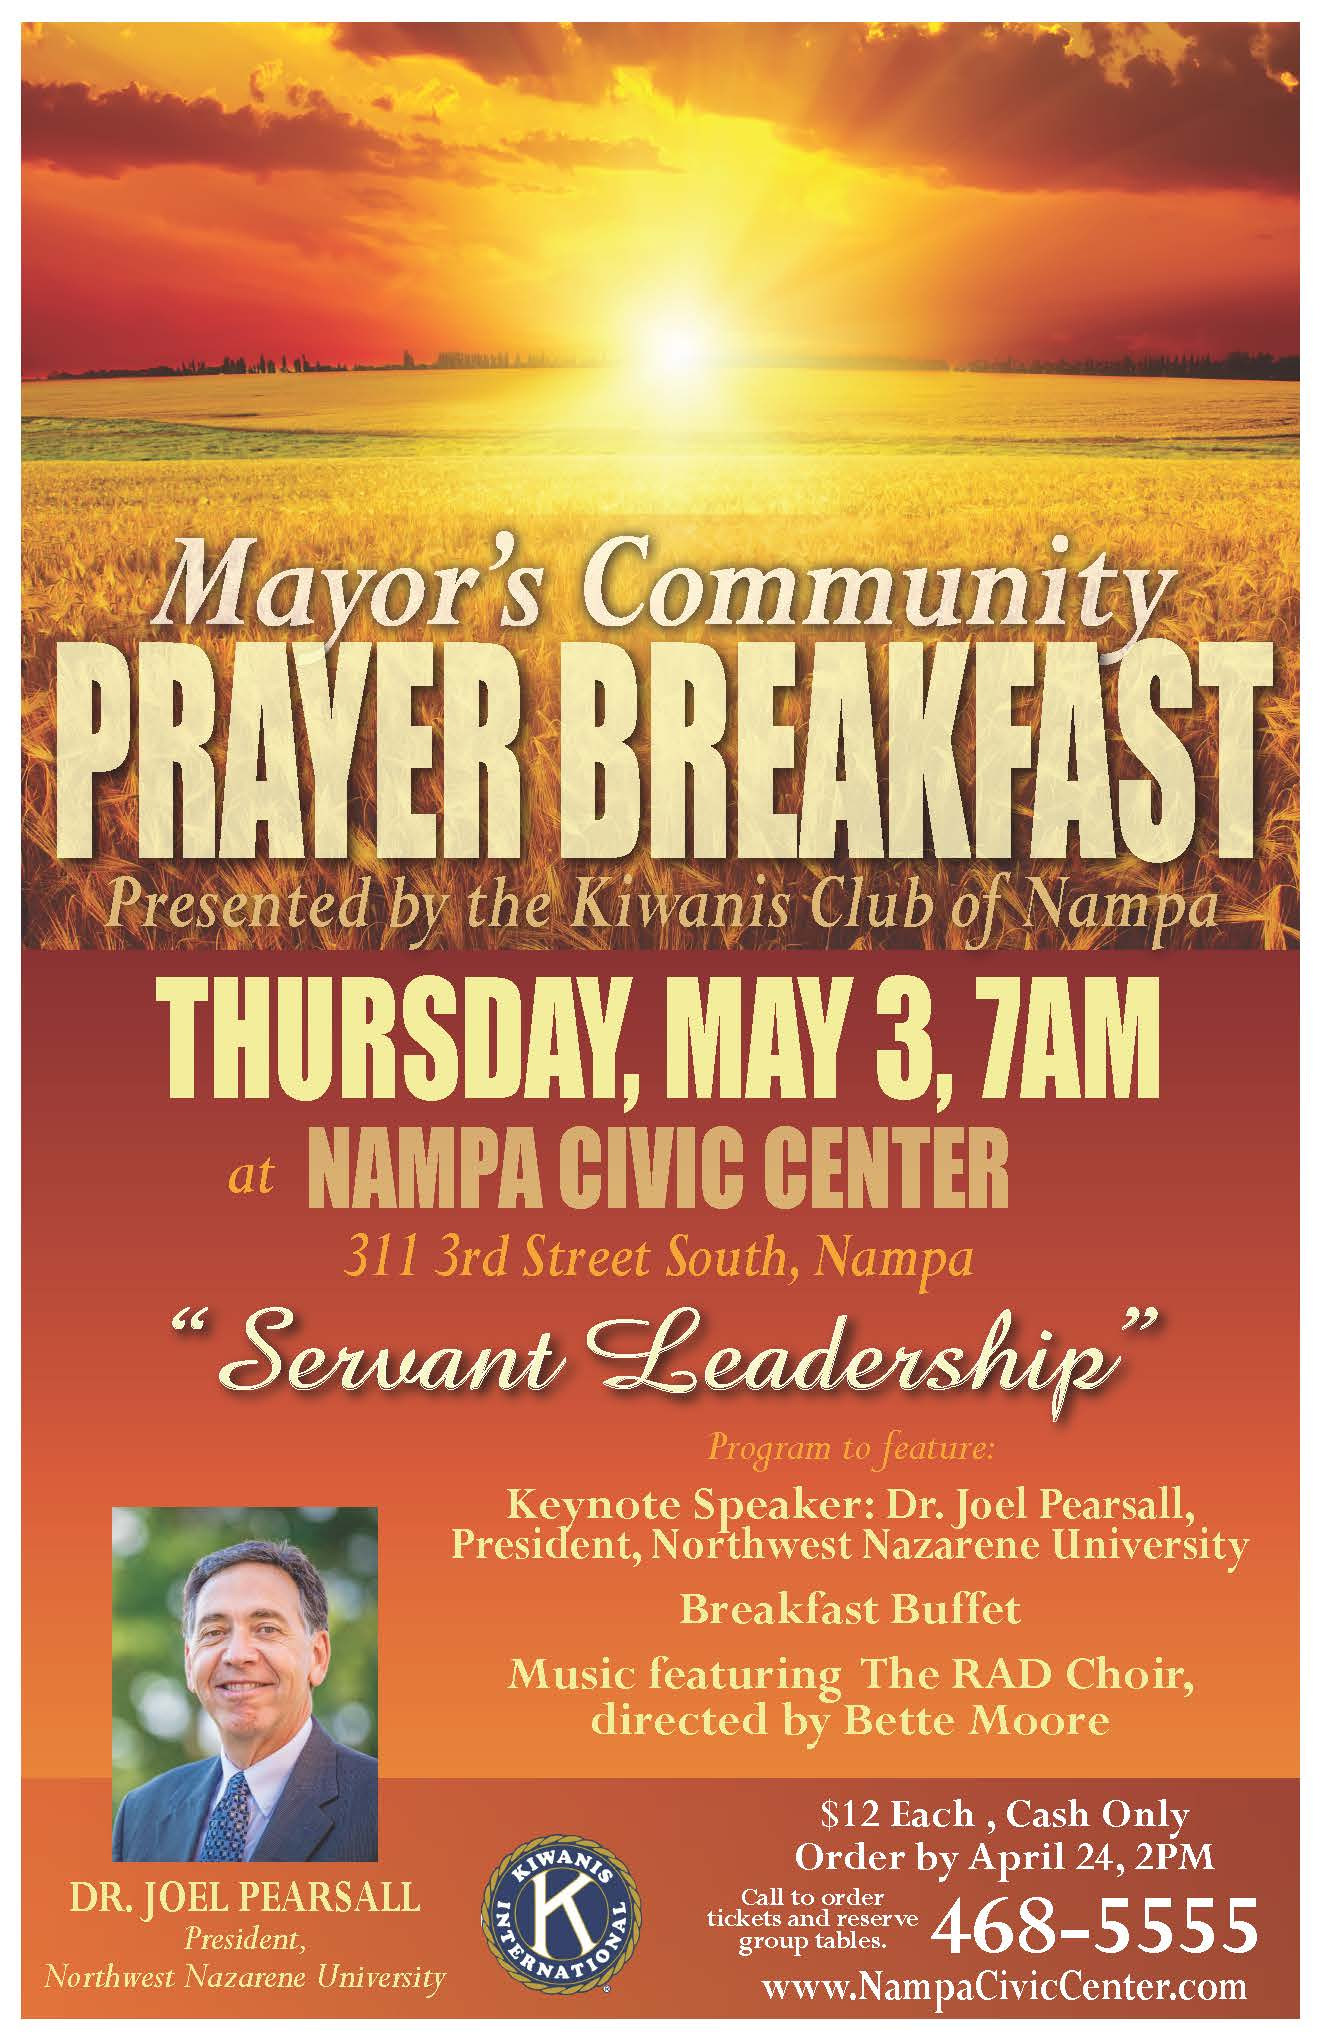 Mayor Debbie Kling Prayer Breakfast - presented by Kiwanis Club of Nampa